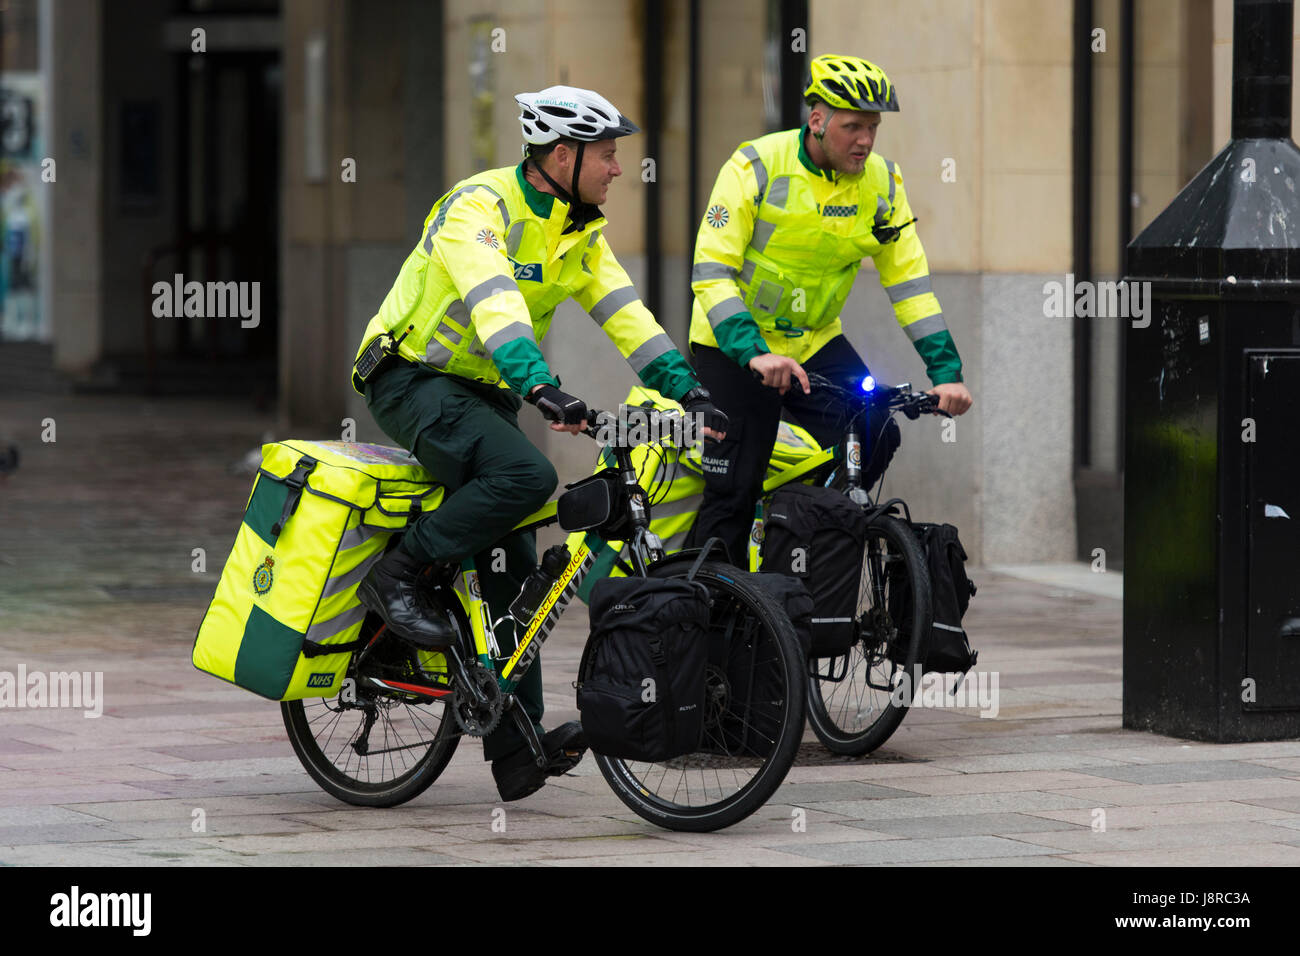 Ambulance first responders on bicycles in Cardiff, Wales, UK. - Stock Image